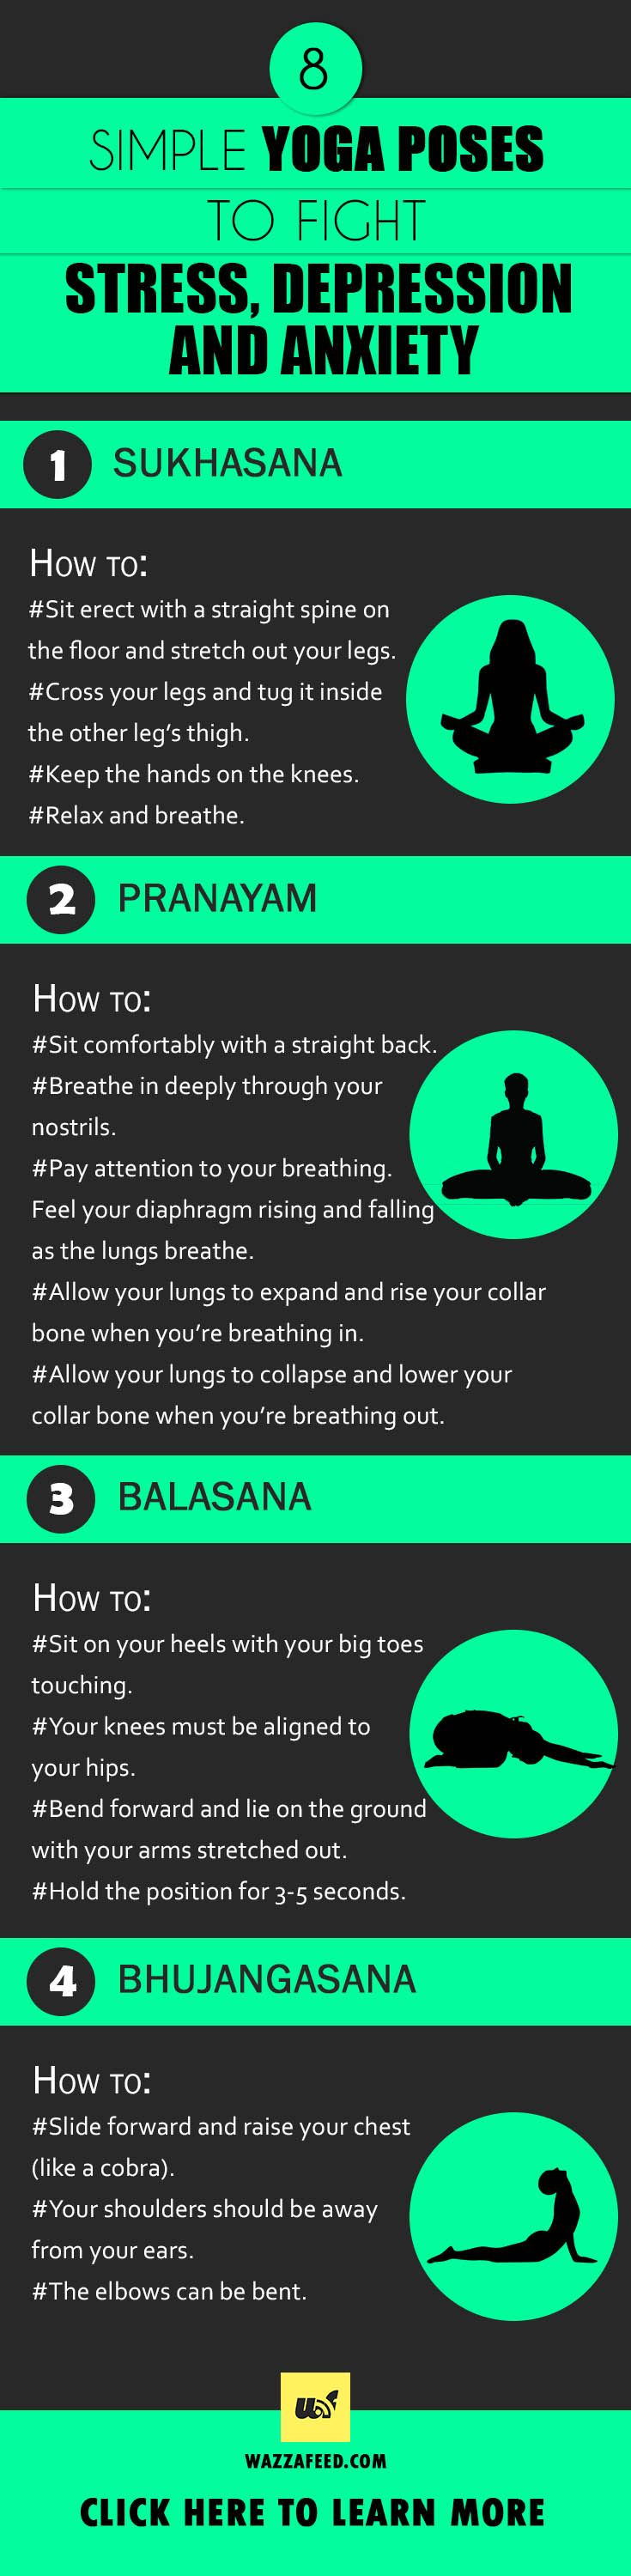 Psychology-Infographic-8-Yoga-Poses-To-Fight-Stress-Depression-and-Anxiety Psychology Infographic : 8 Yoga Poses To Fight Stress, Depression and Anxiety